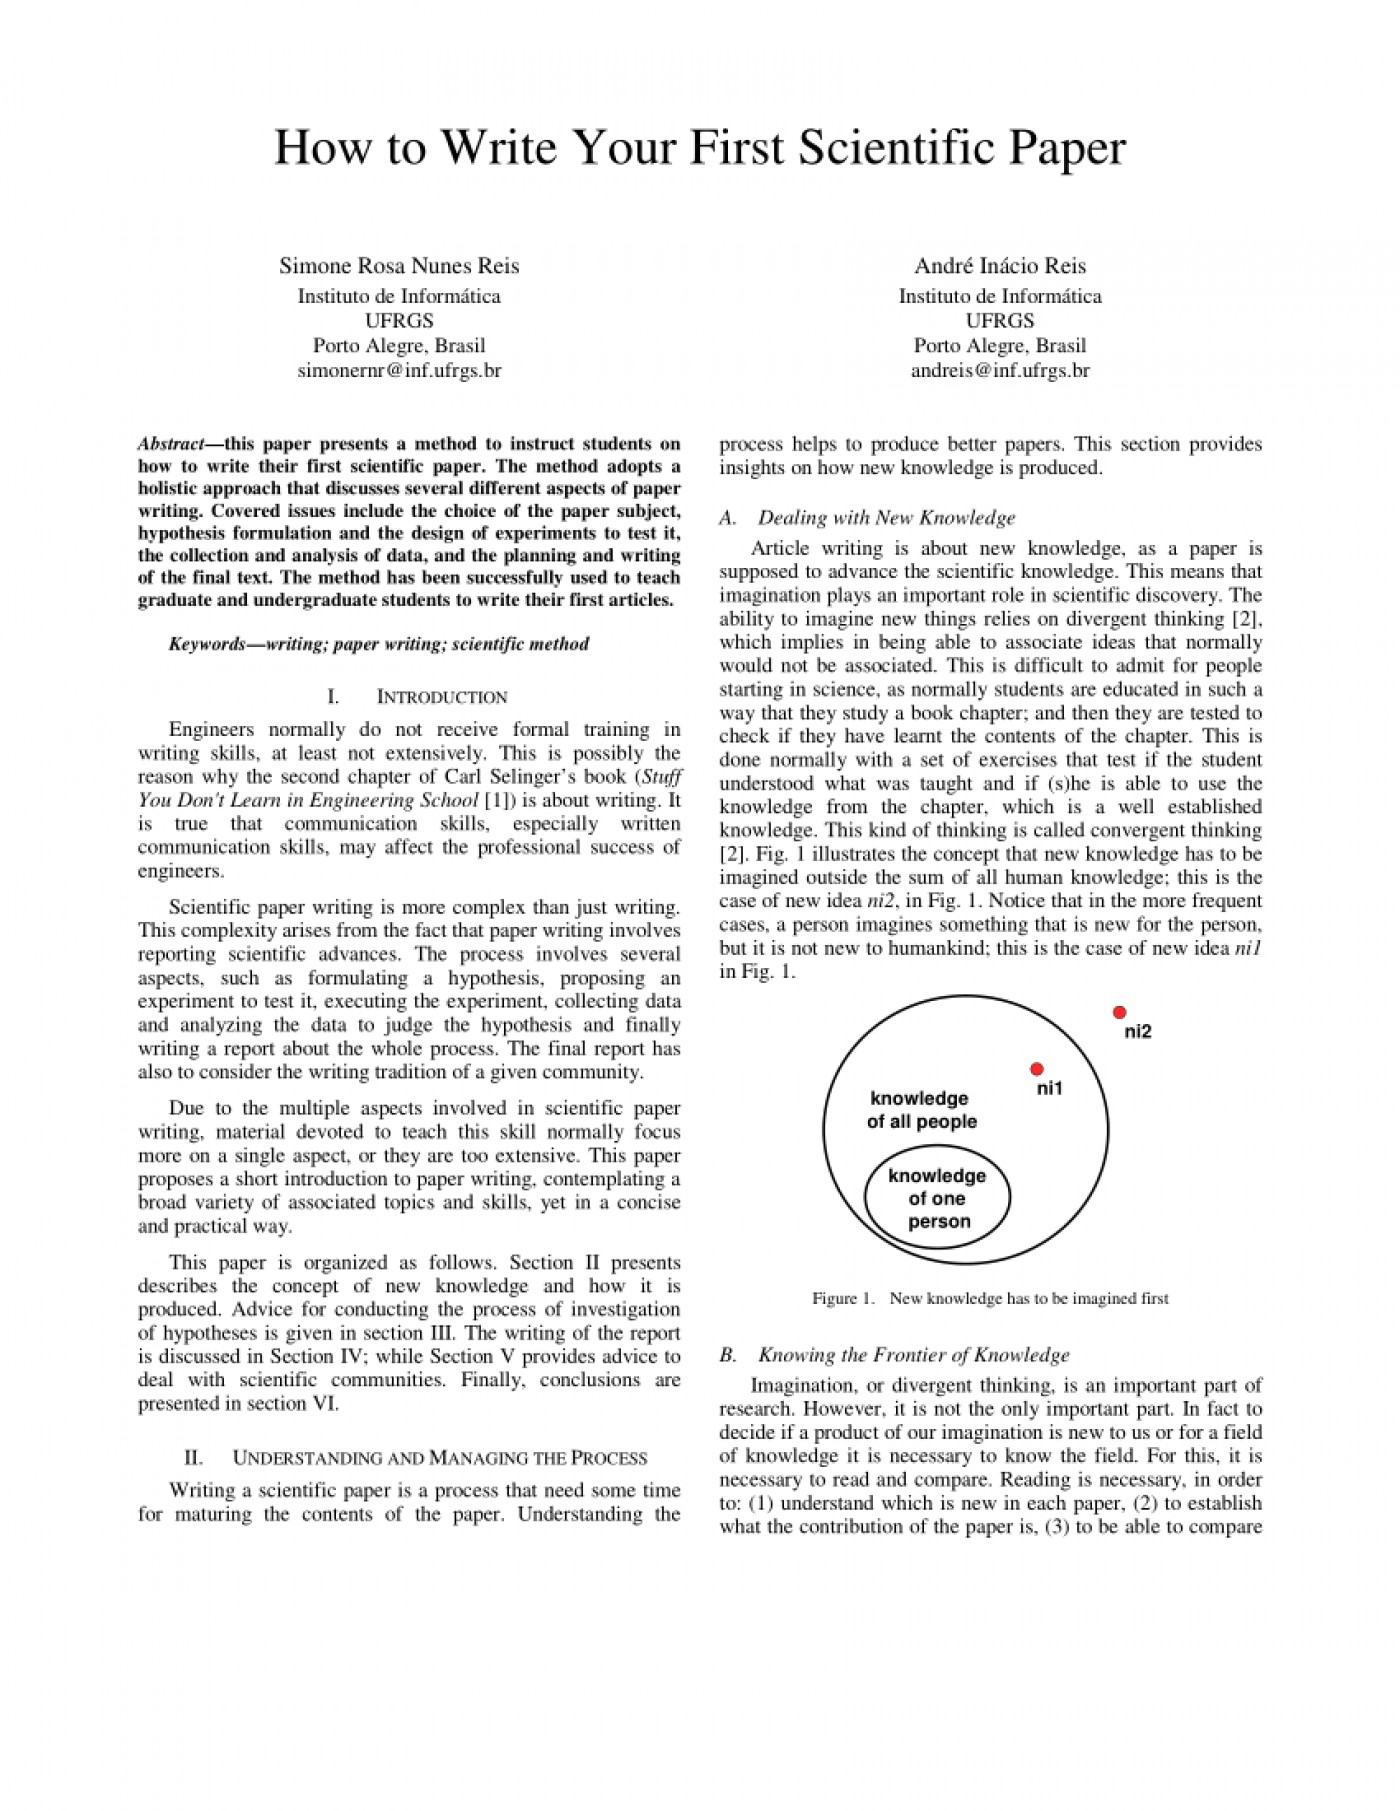 007 How To Write Scientific Paper And Publish Research Surprising A Pdf 1400